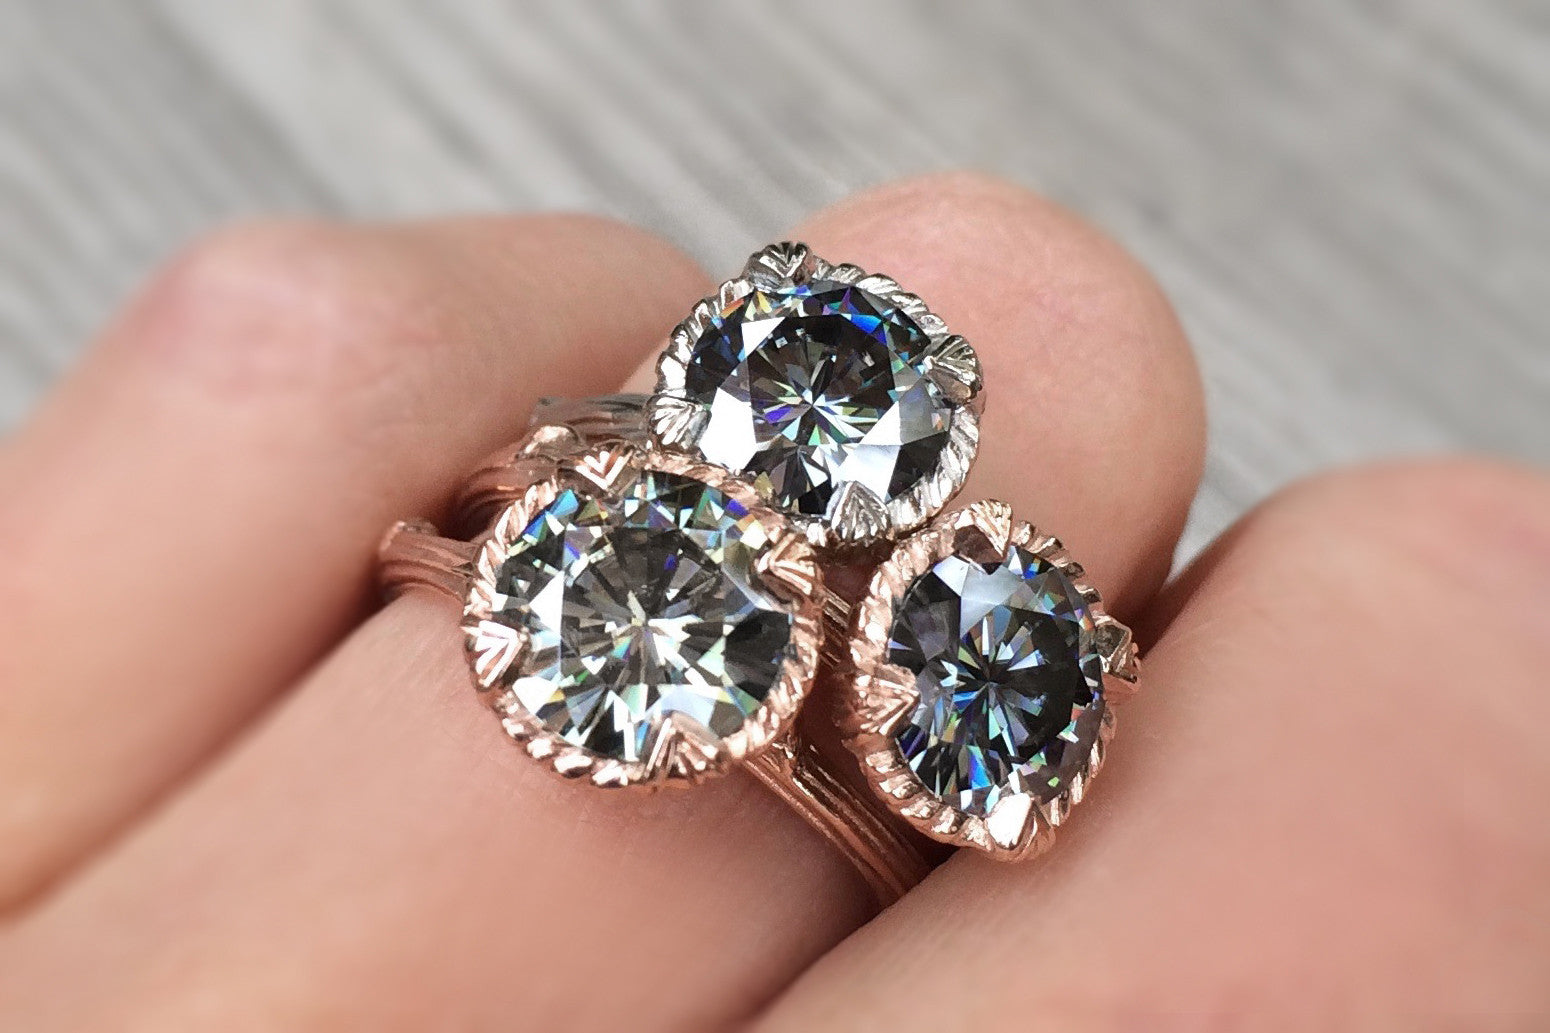 rose diamond nl milgrain collections rings in aquamarine engagement shpaed colorful look jewelry outstanding colored ring diamonds at antique oval fascinating gold with blue rg